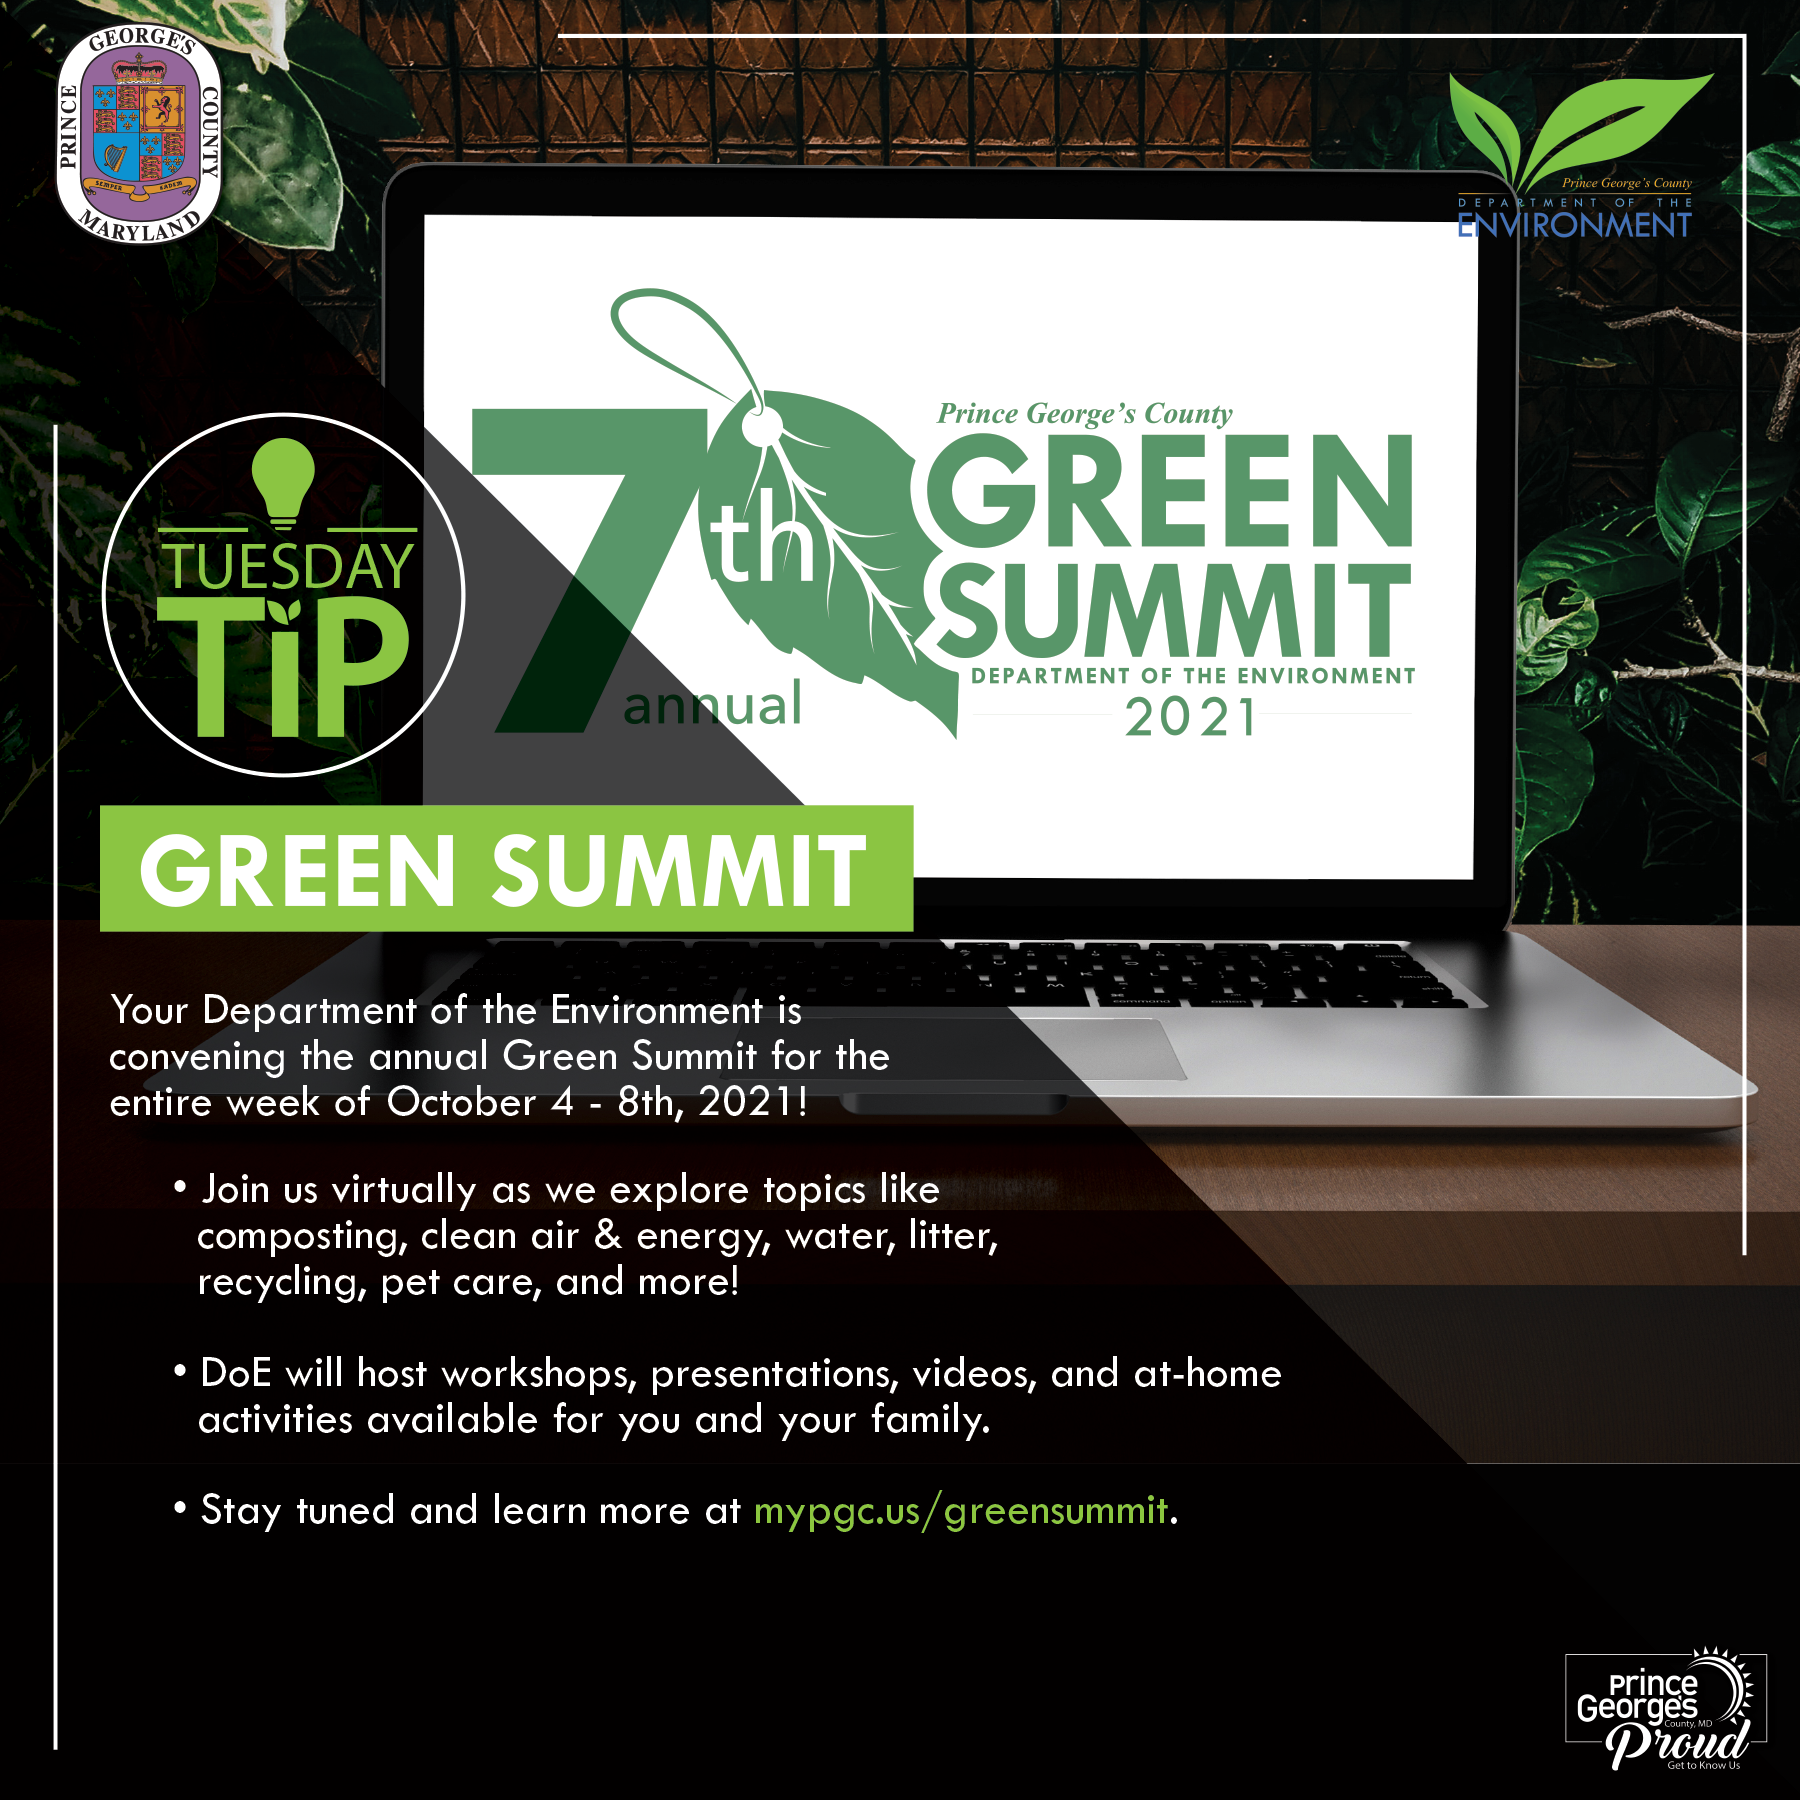 Tues Tip 9.28.21 Green summit eng